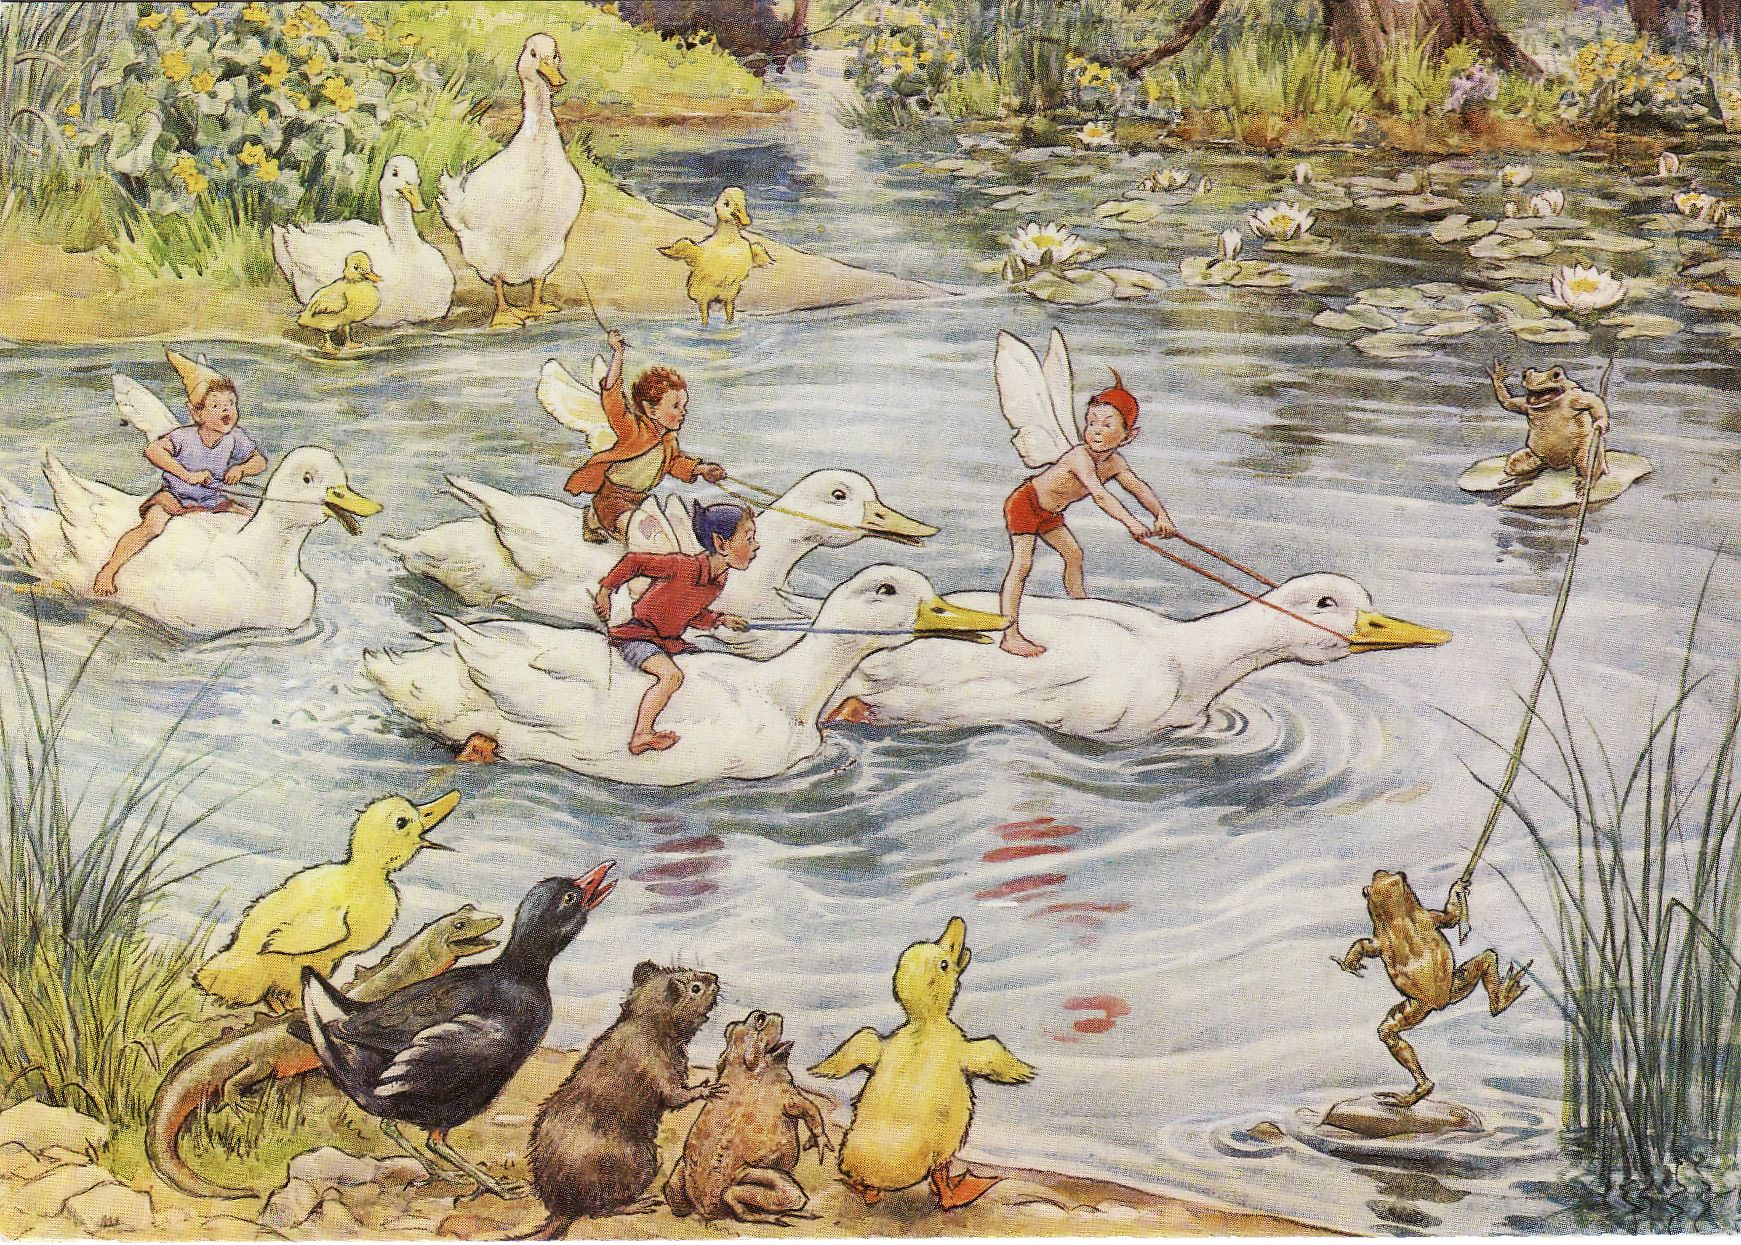 Water Sports by Margaret W. Tarrant